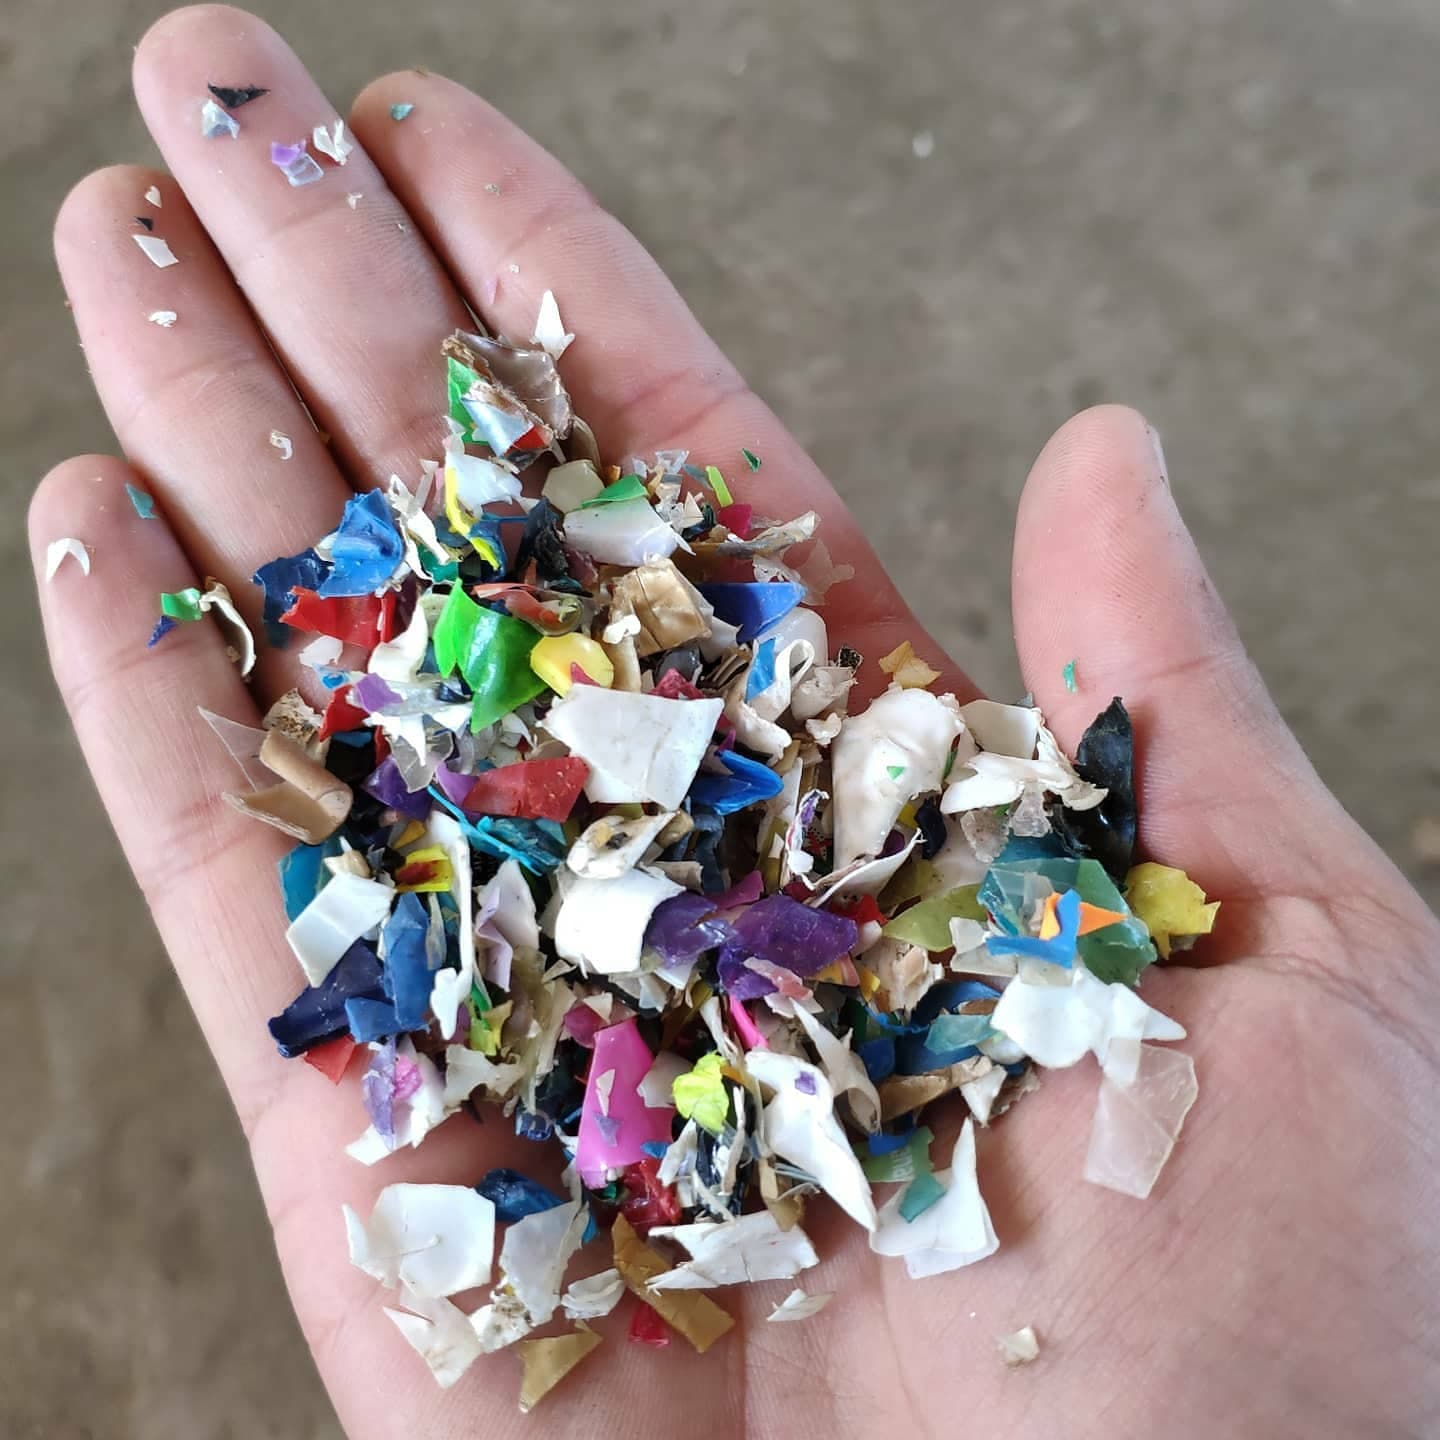 Plastic flakes to clean